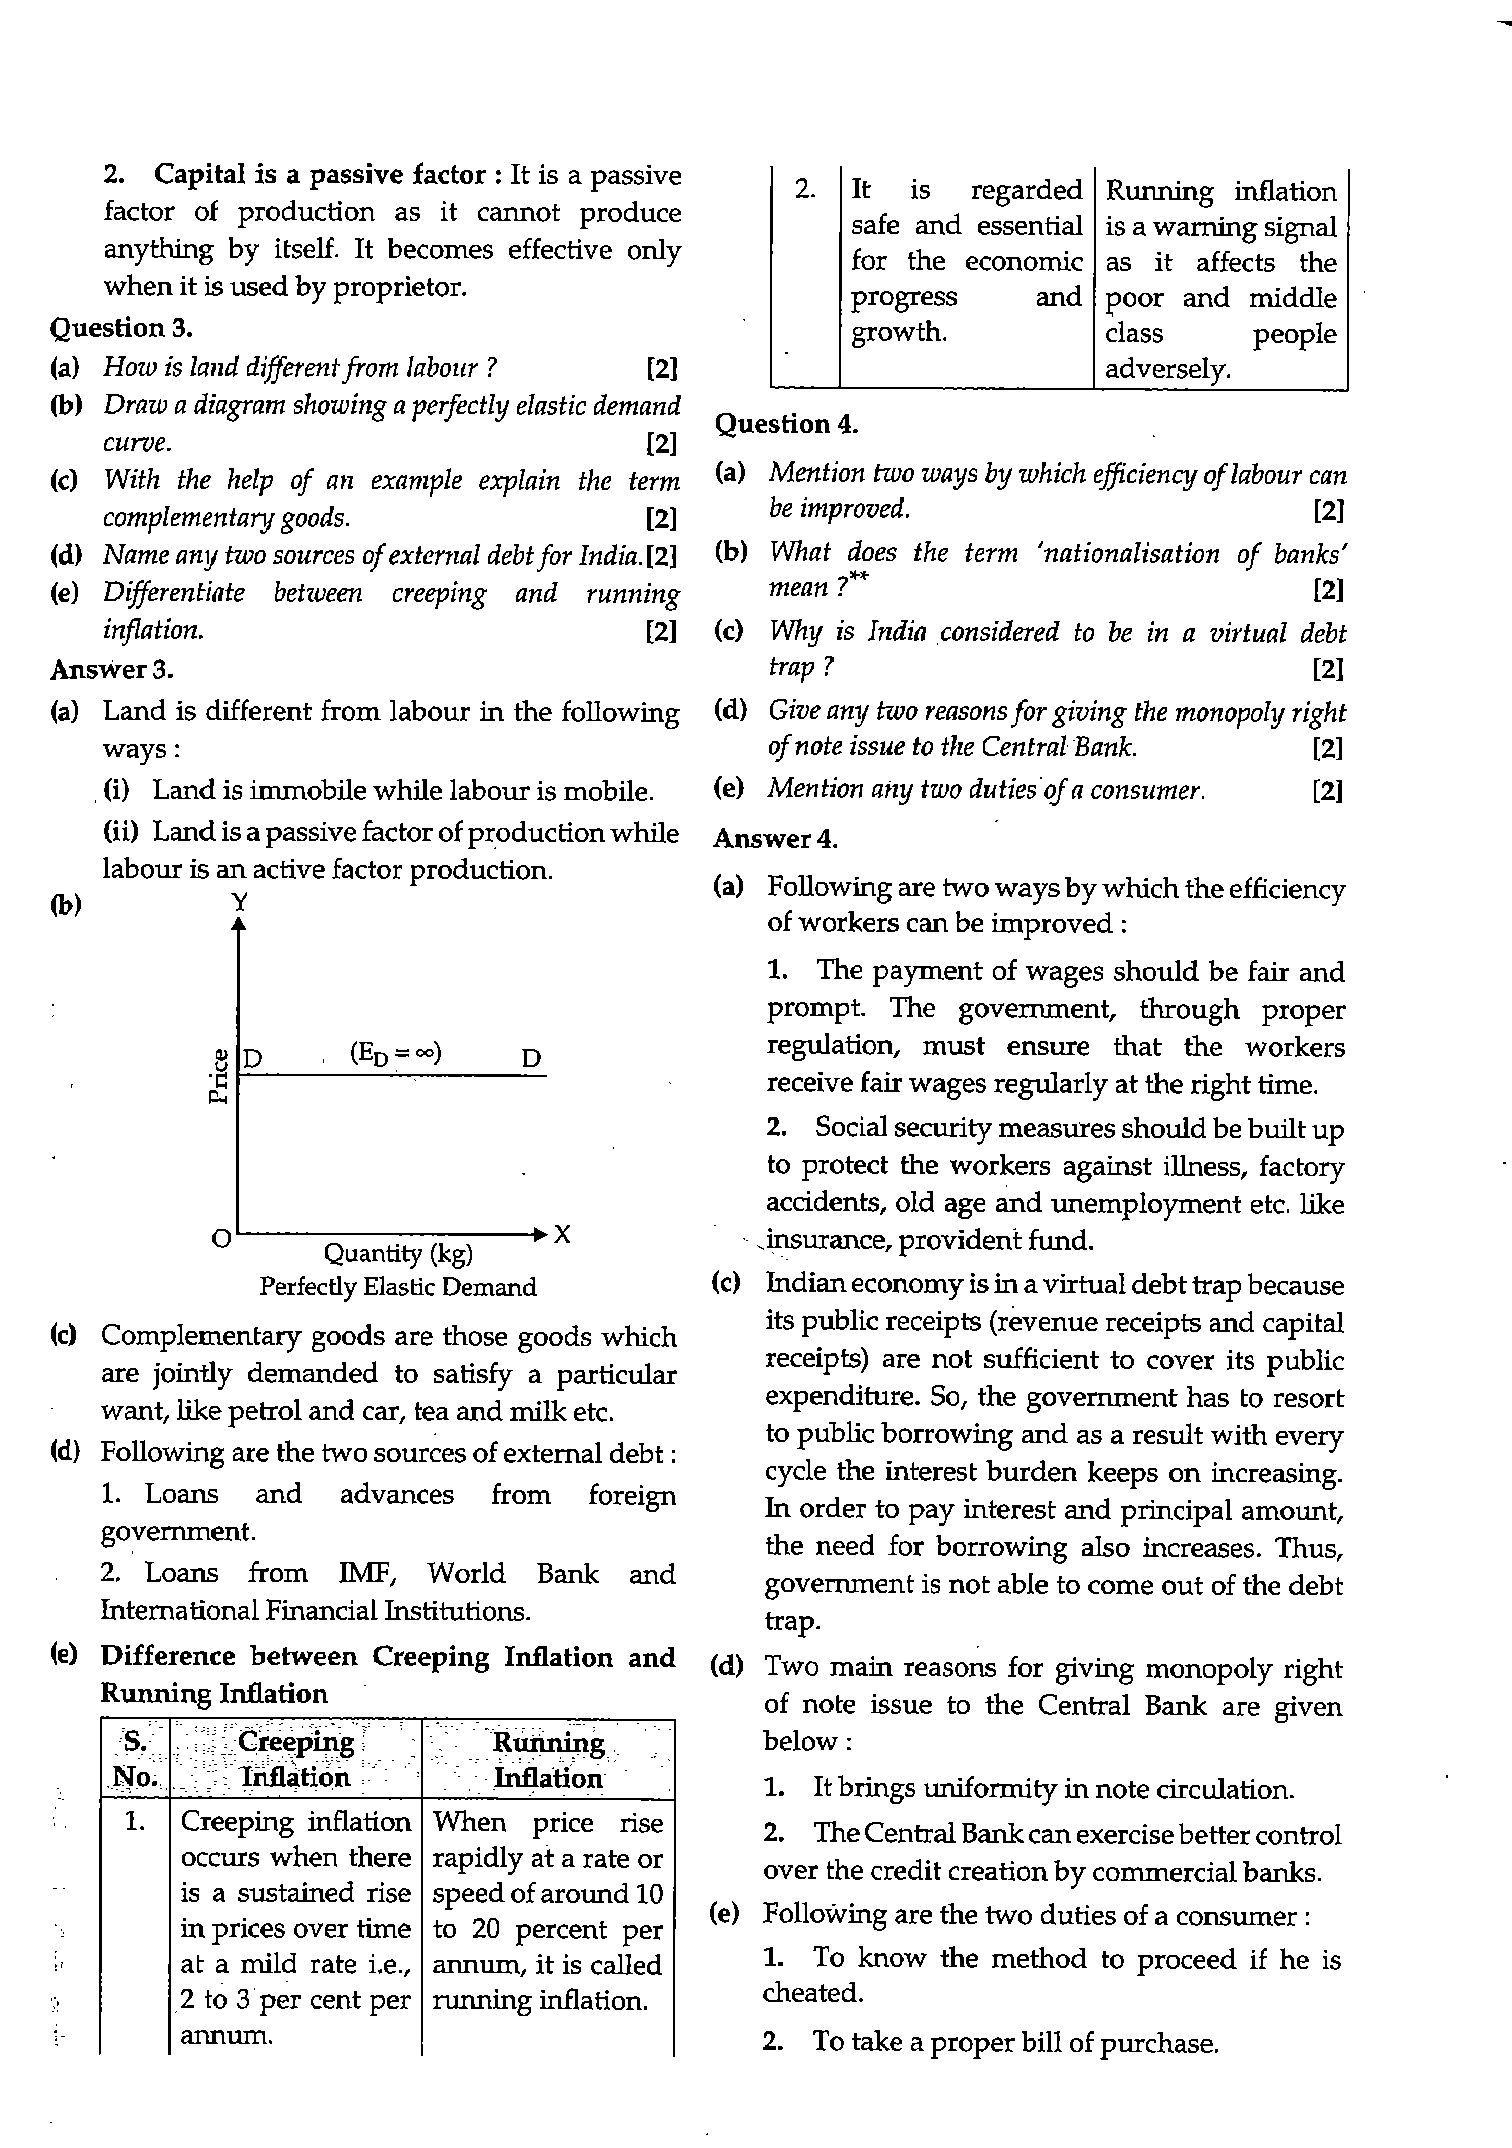 ICSE Class 10 Economics 2018 Question Paper